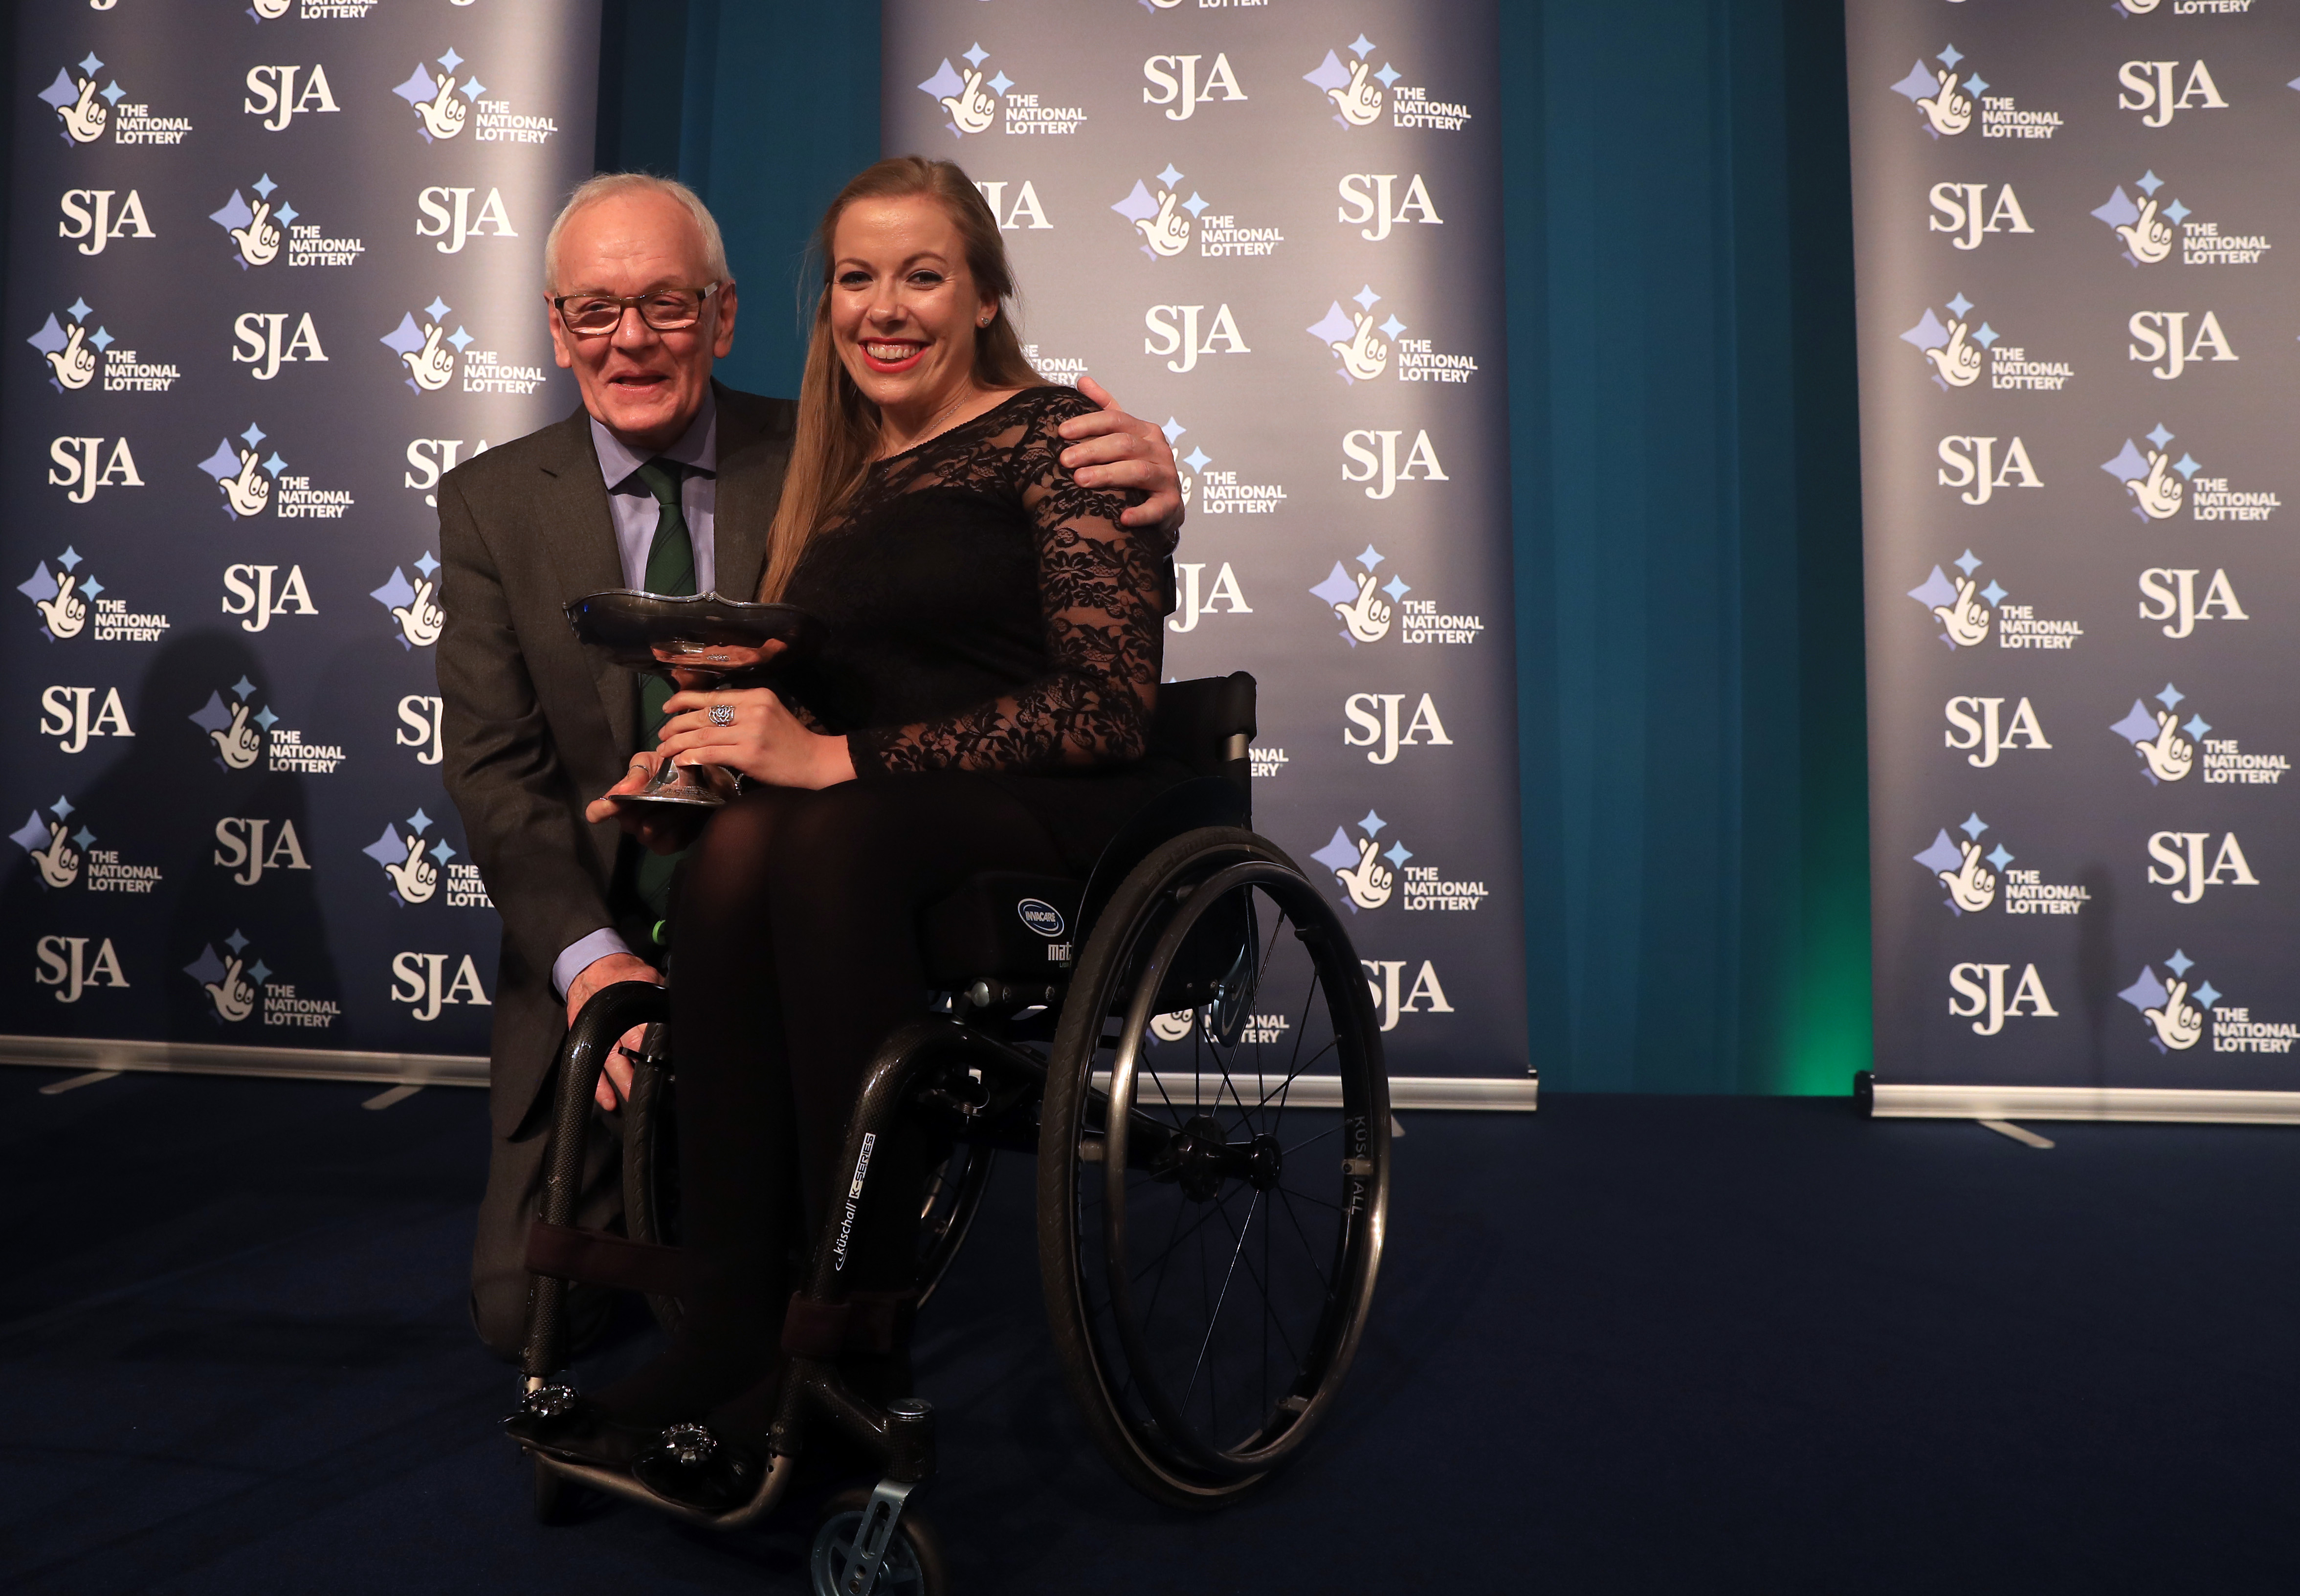 To see yourself alongside sporting giants is nice – Hannah Cockroft